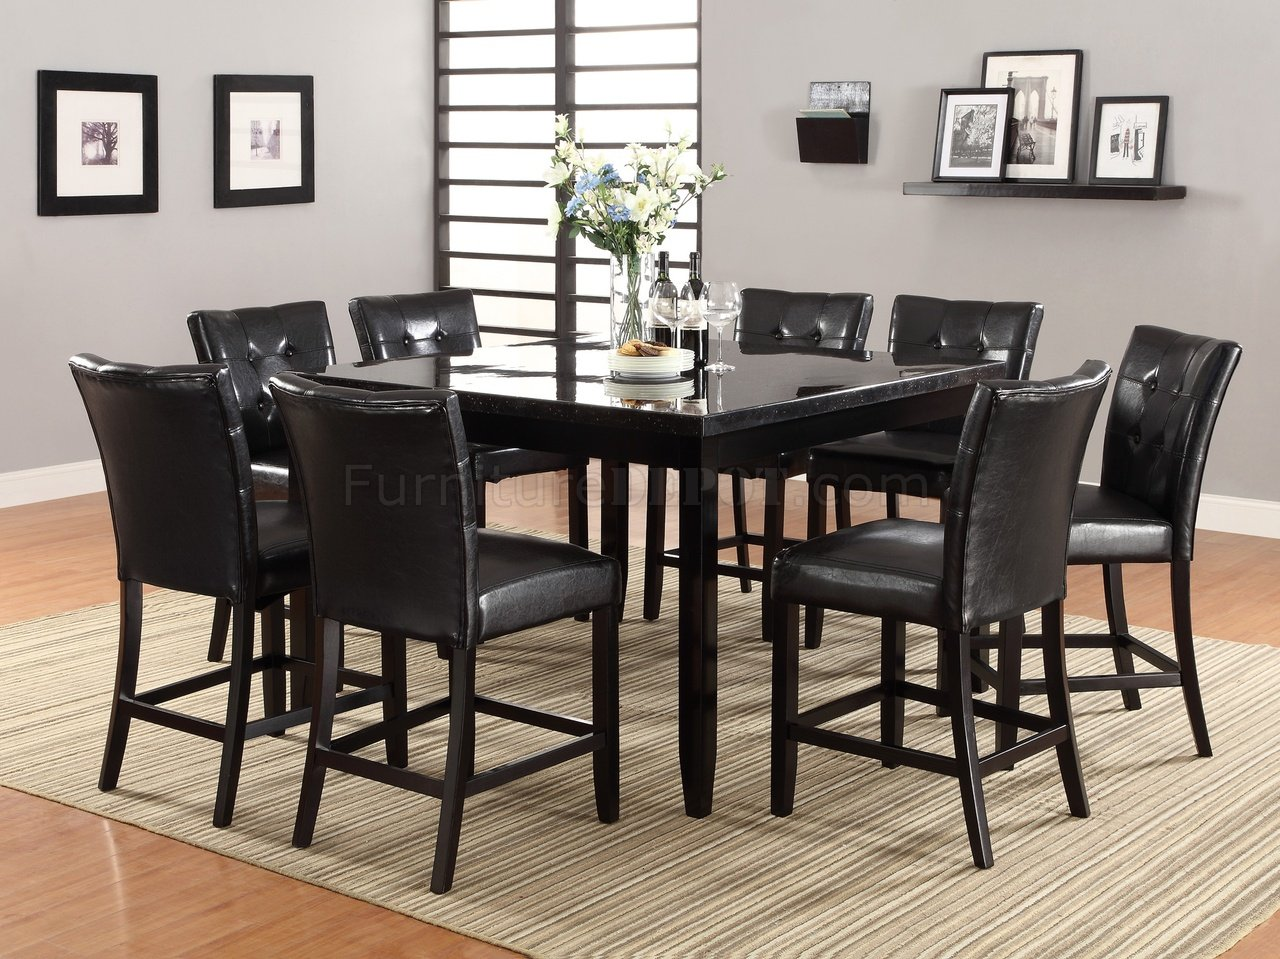 103628 Counter Height Dining Table By Coaster W Options